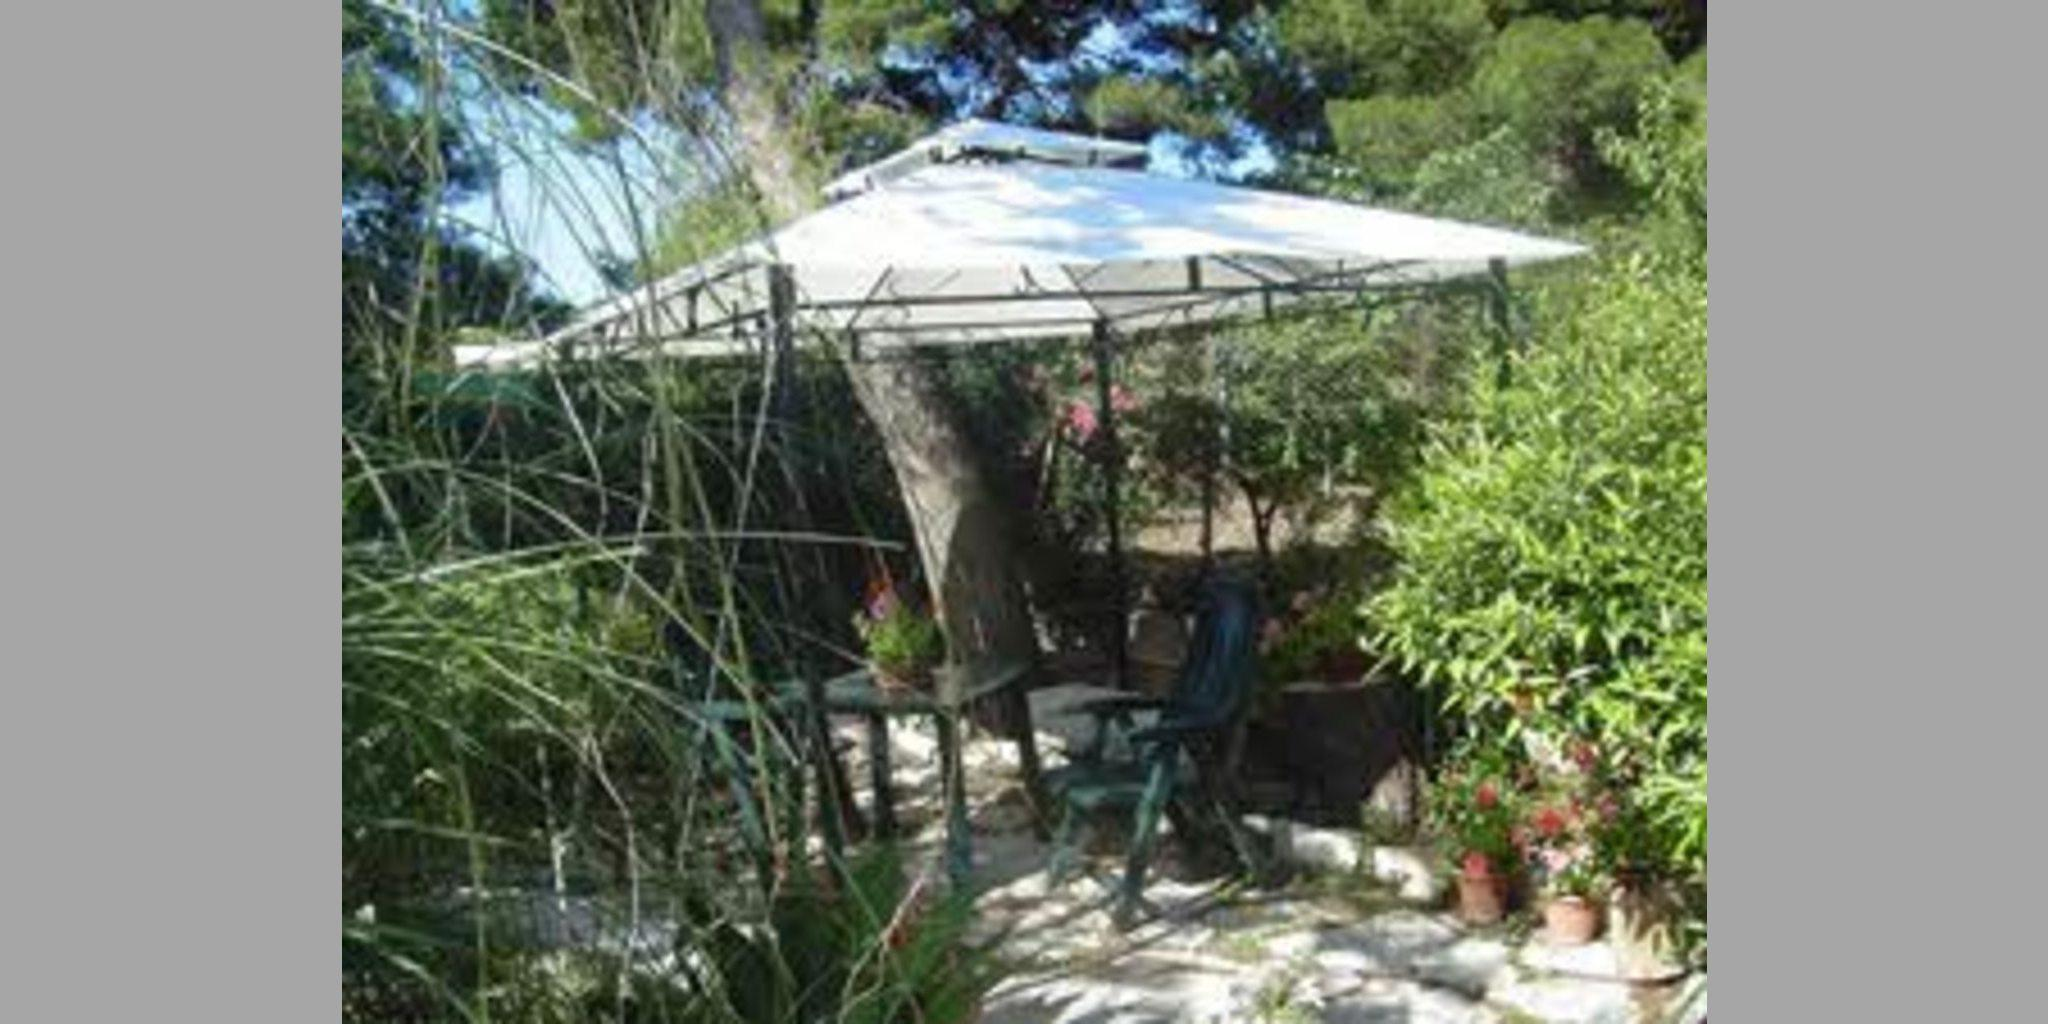 Bed & Breakfast Buseto Palizzolo - Palermo